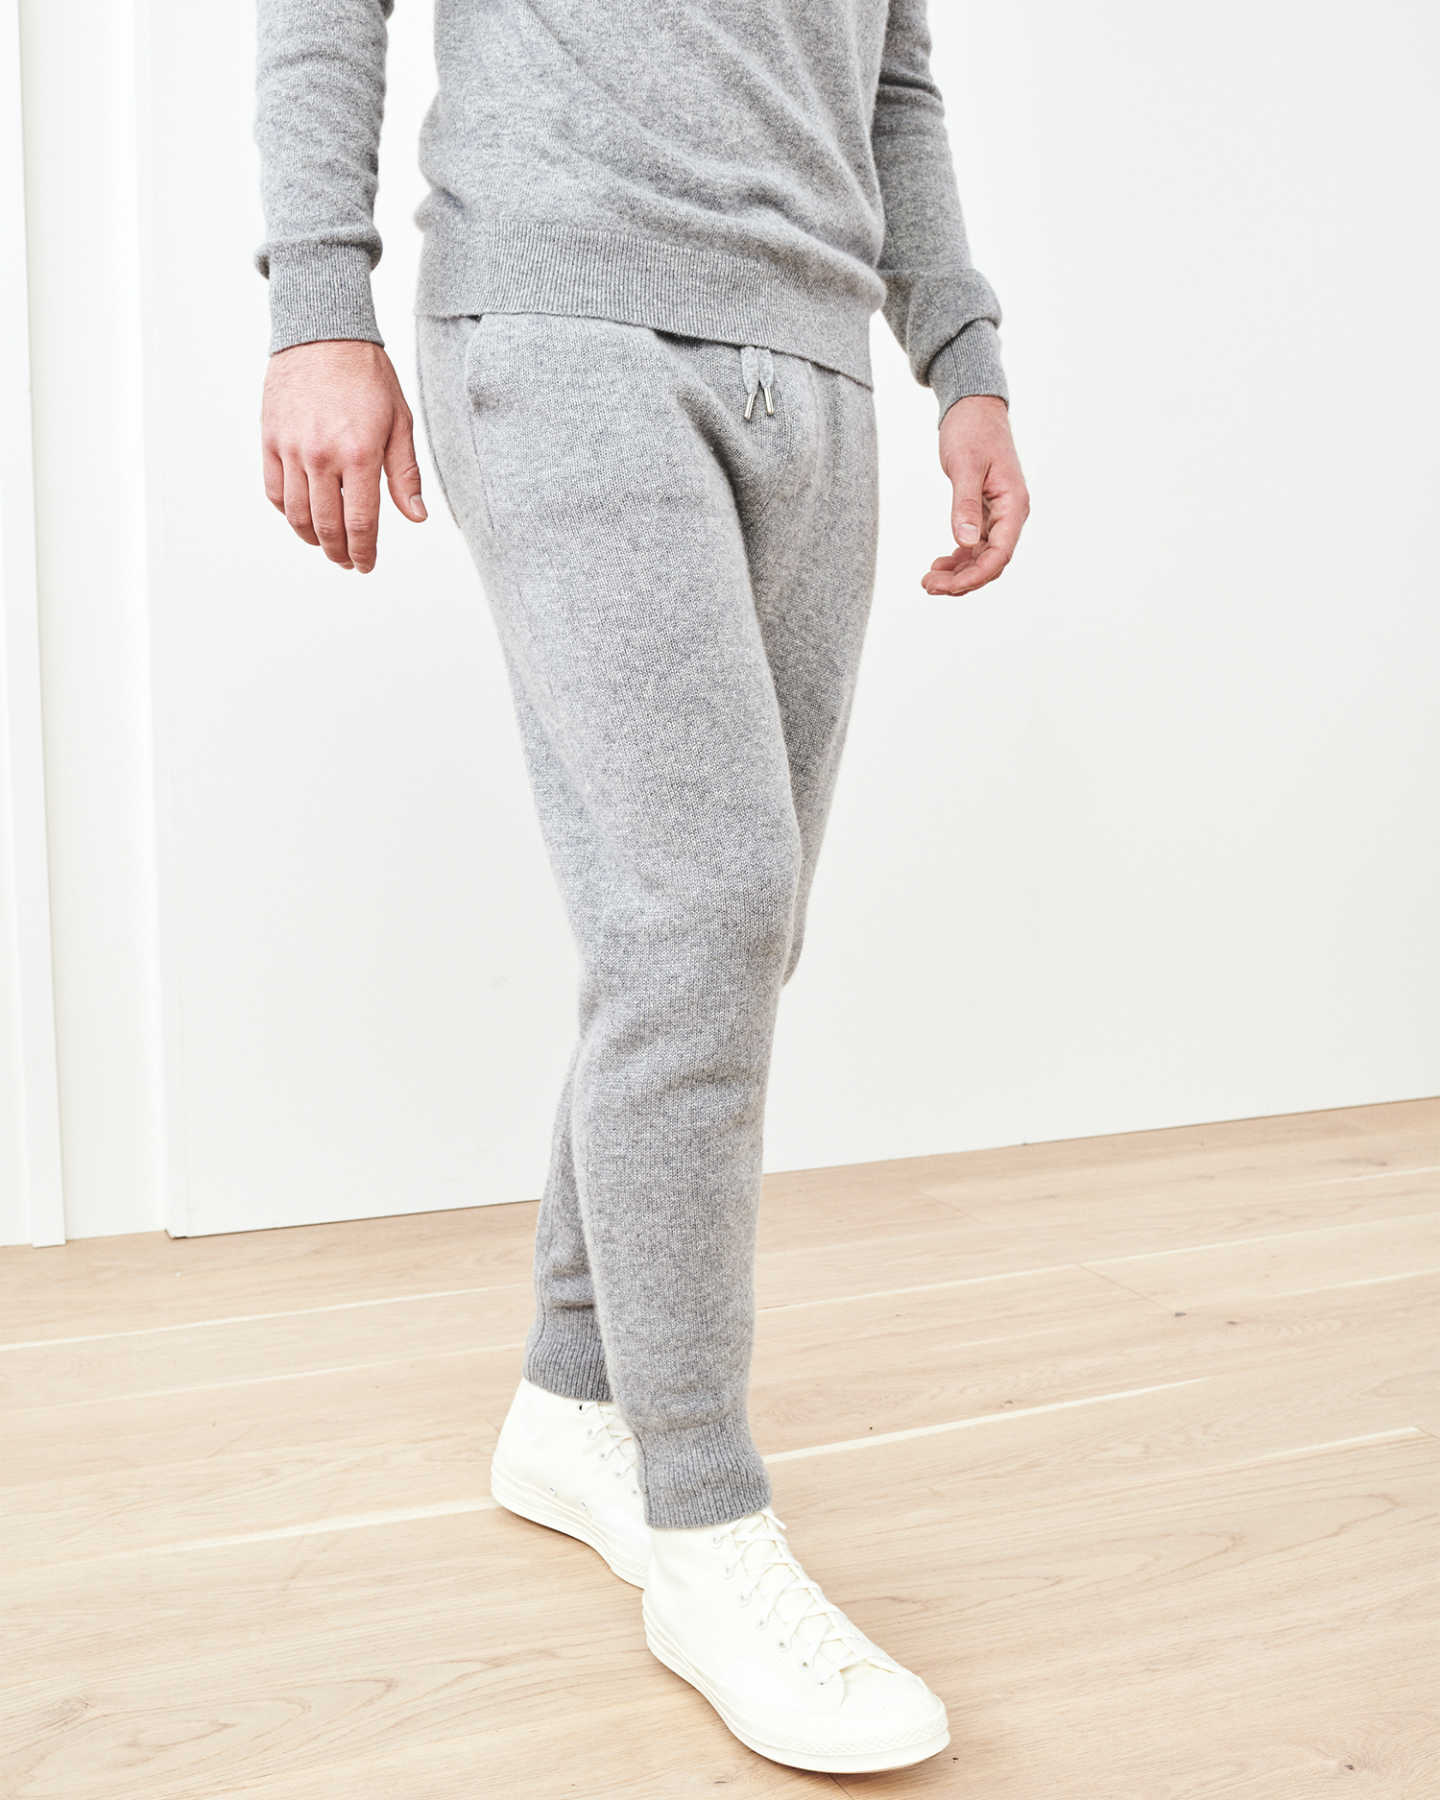 Man wearing cashmere men's cashmere joggers / cashmere sweatpants in grey walking